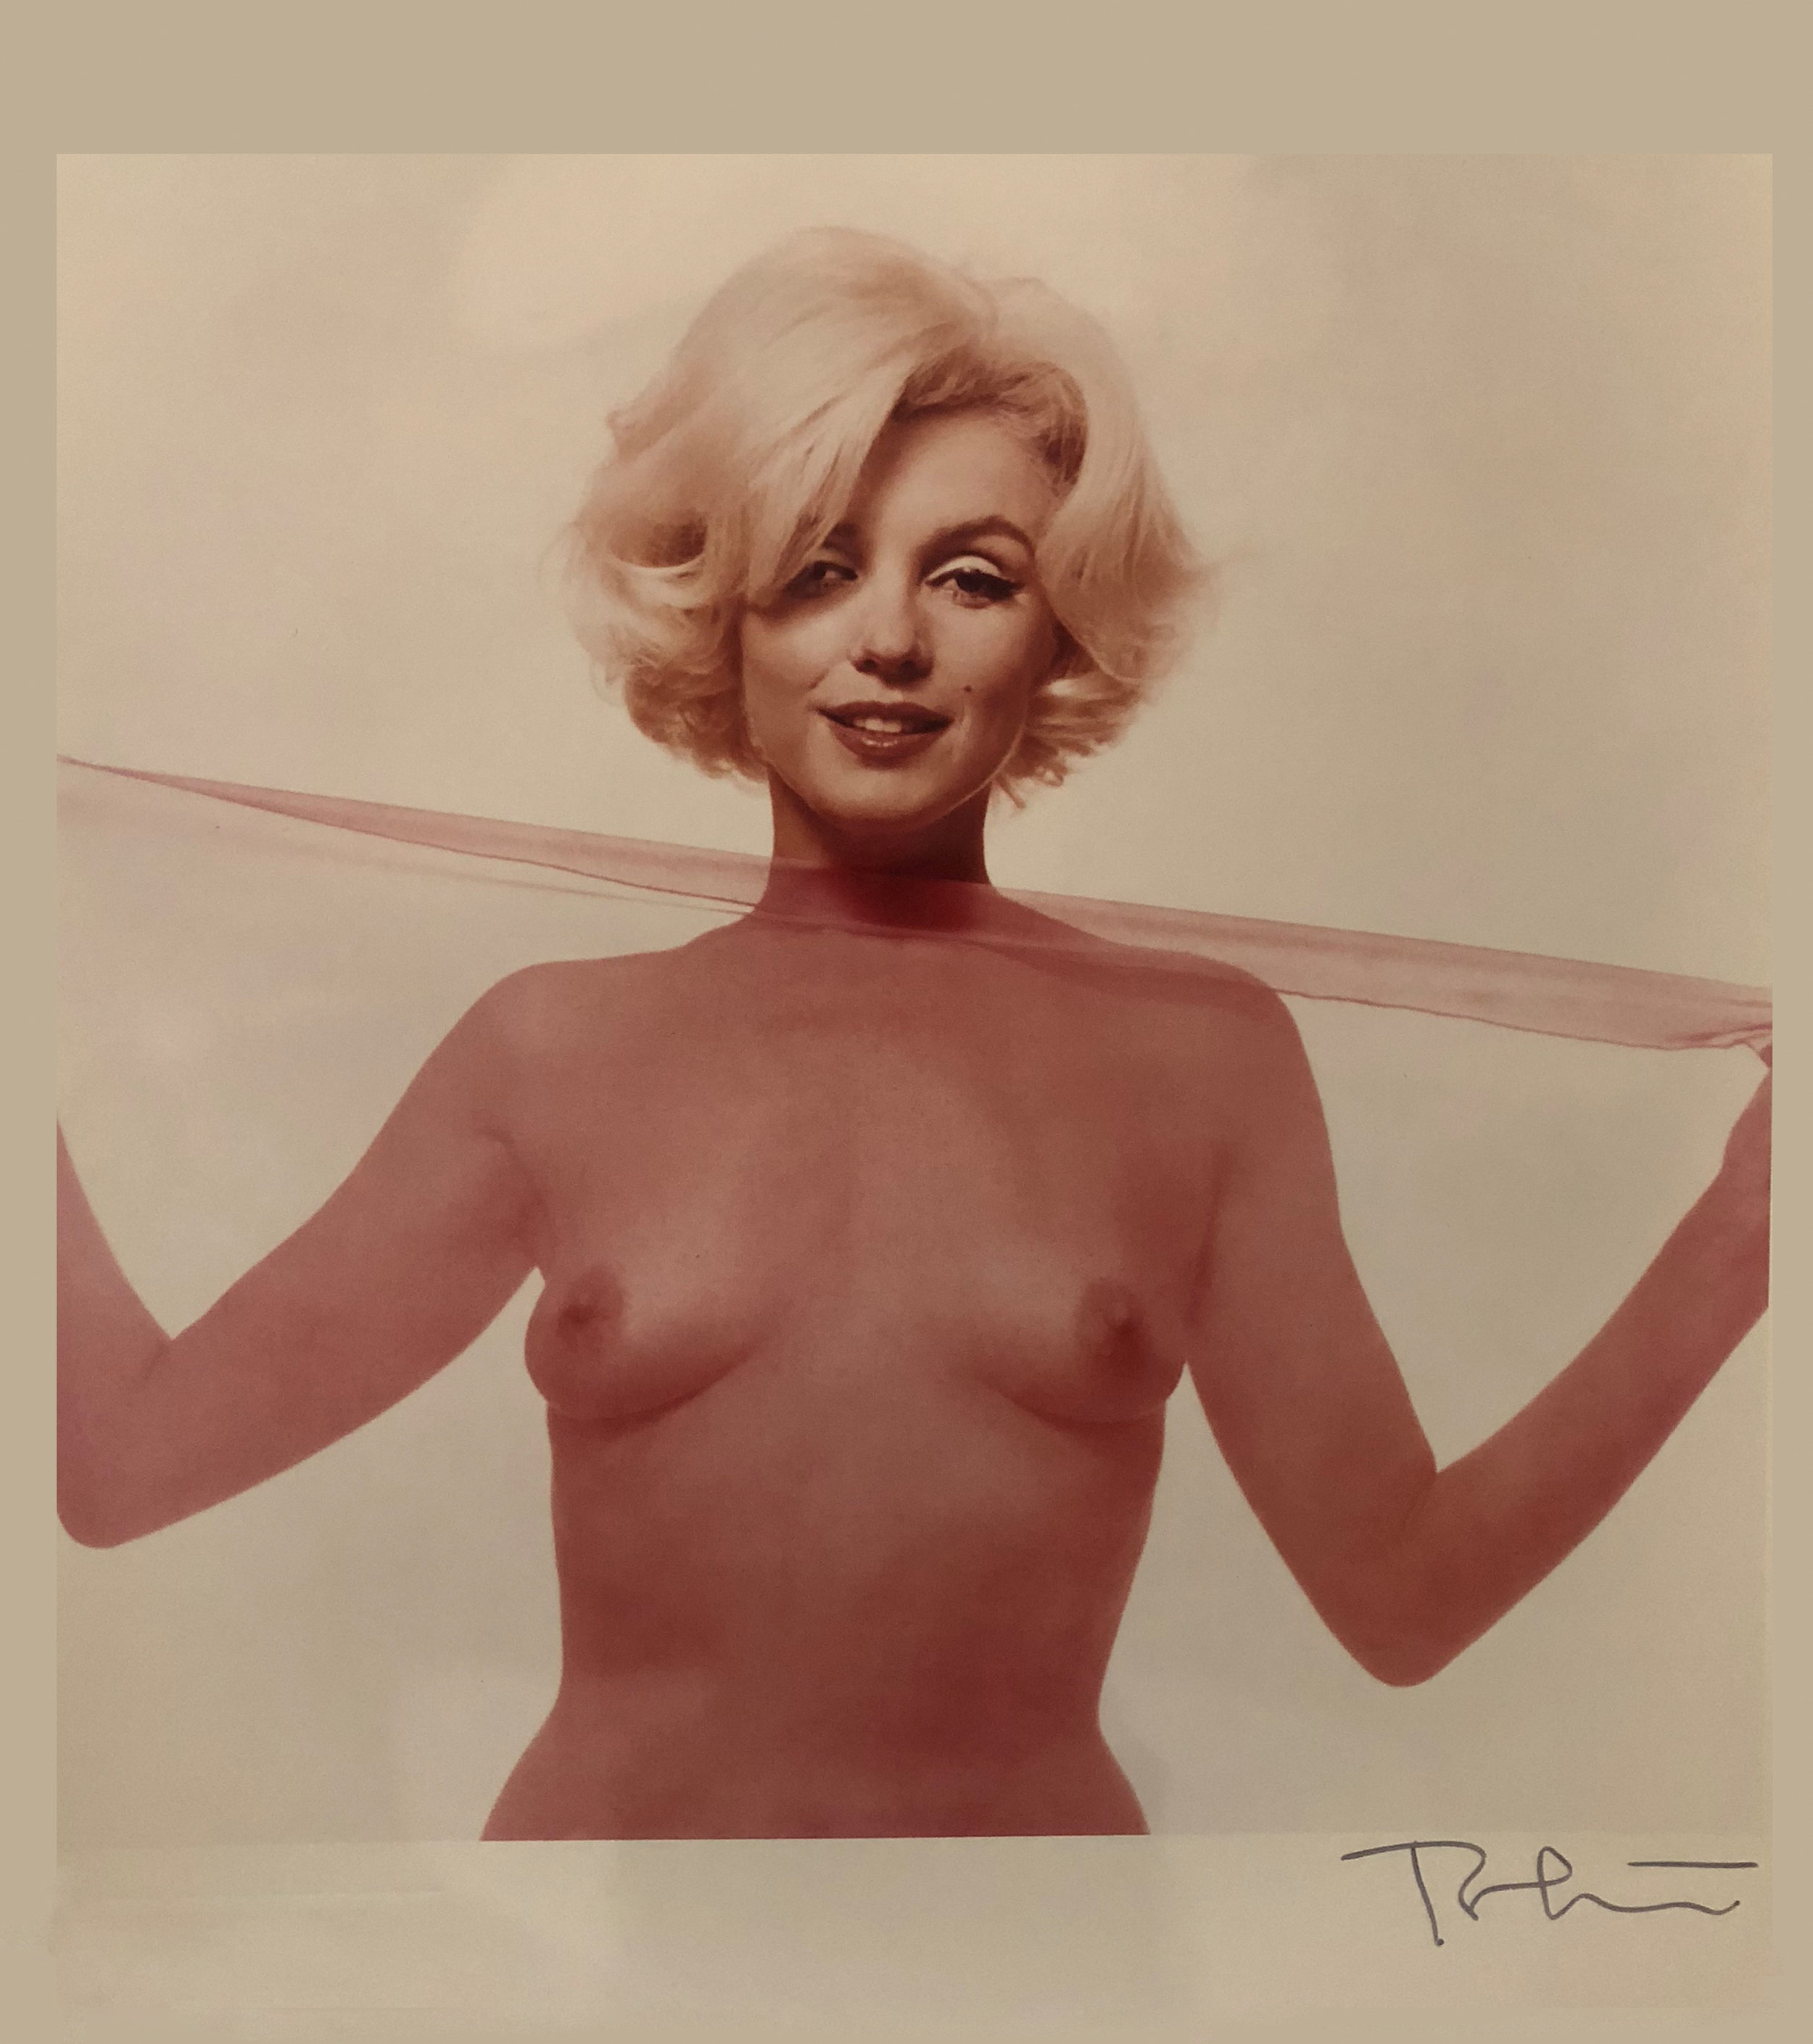 """© Bert Stern """" Not Bad For 36""""  1962 Color Photograph Made From Original Transparencies  Hand Signed And Numbered"""